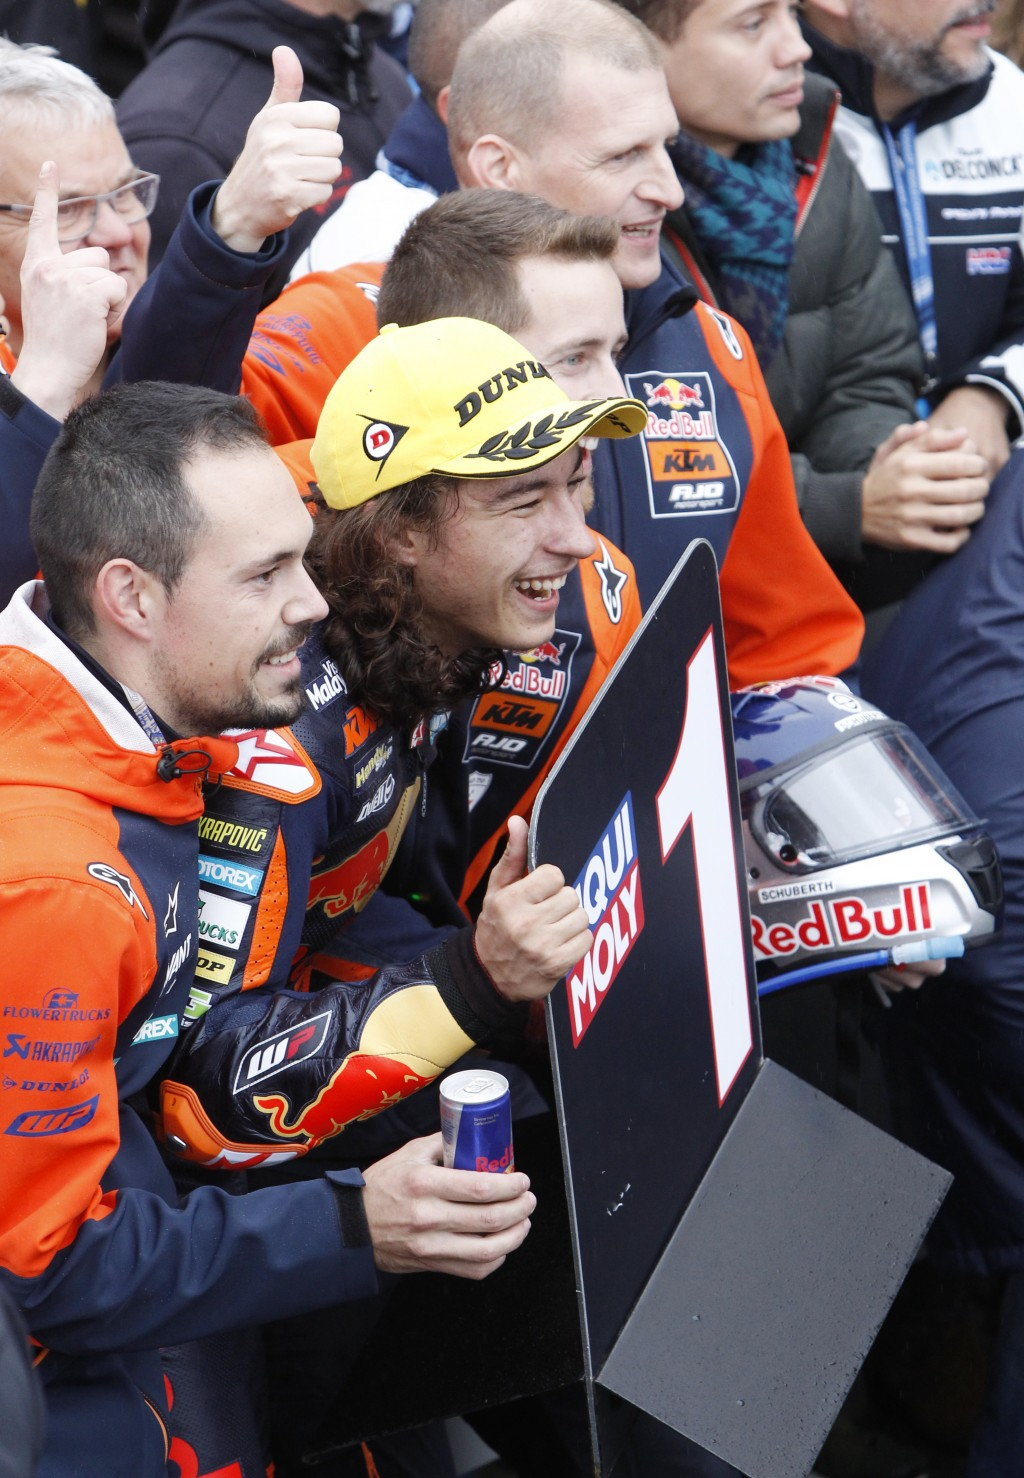 Moto3 KTM rider Can Oncu of Turkey, centre, celebrates with team members after winning the Moto3 Motorcycle Grand Prix at the Ricardo Tormo circuit in